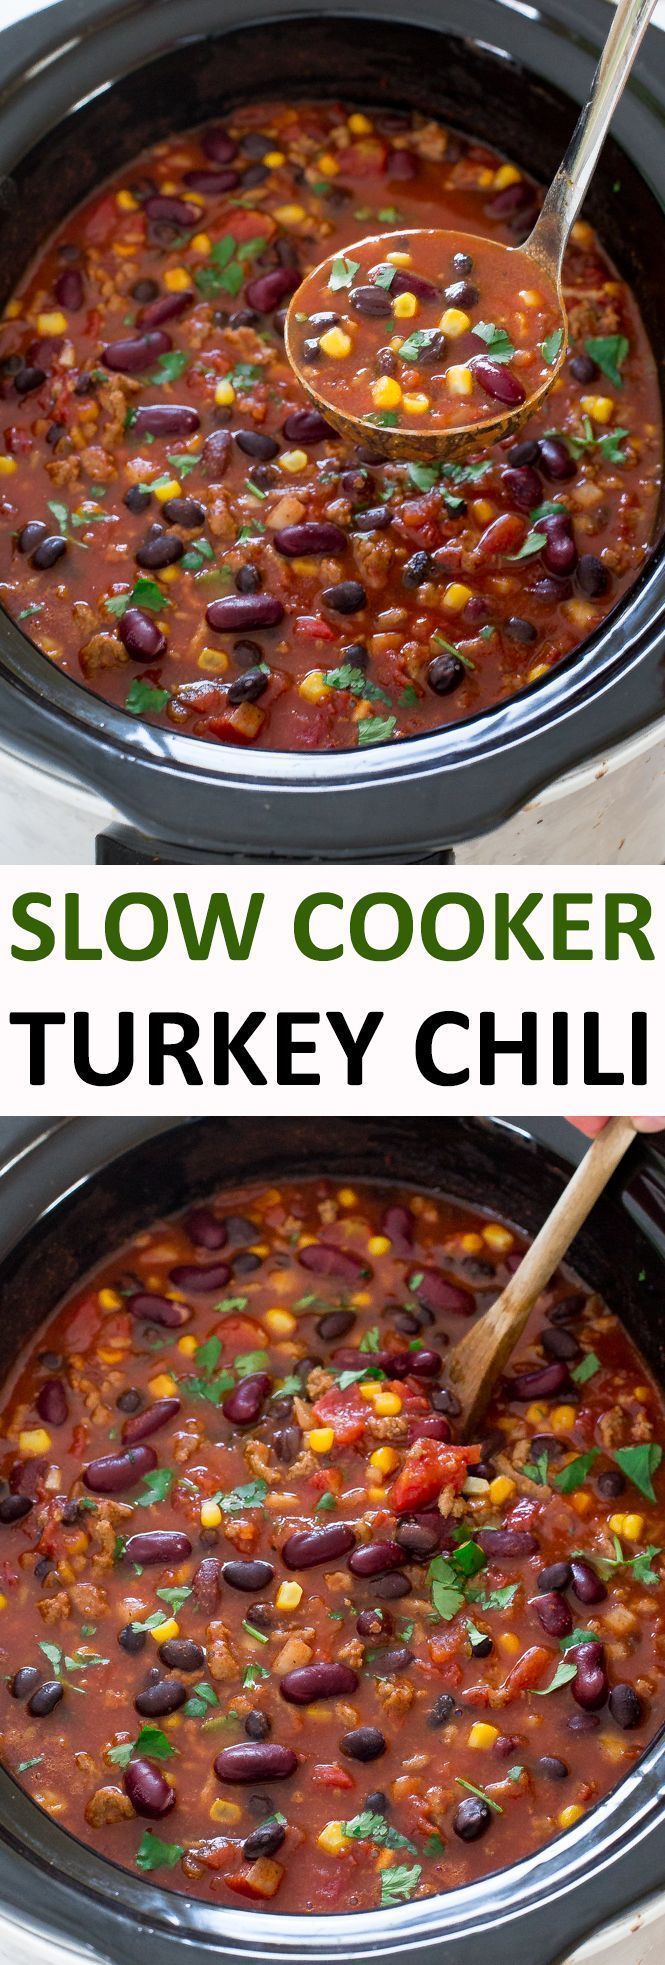 Slow Cooker Turkey Chili. The BEST turkey chili made healthier and in the slow cooker! Hearty, thick, filling and full of flavor! | chefsavvy.com #recipe #turkey #chili #slow #cooker #crockpot #dinner